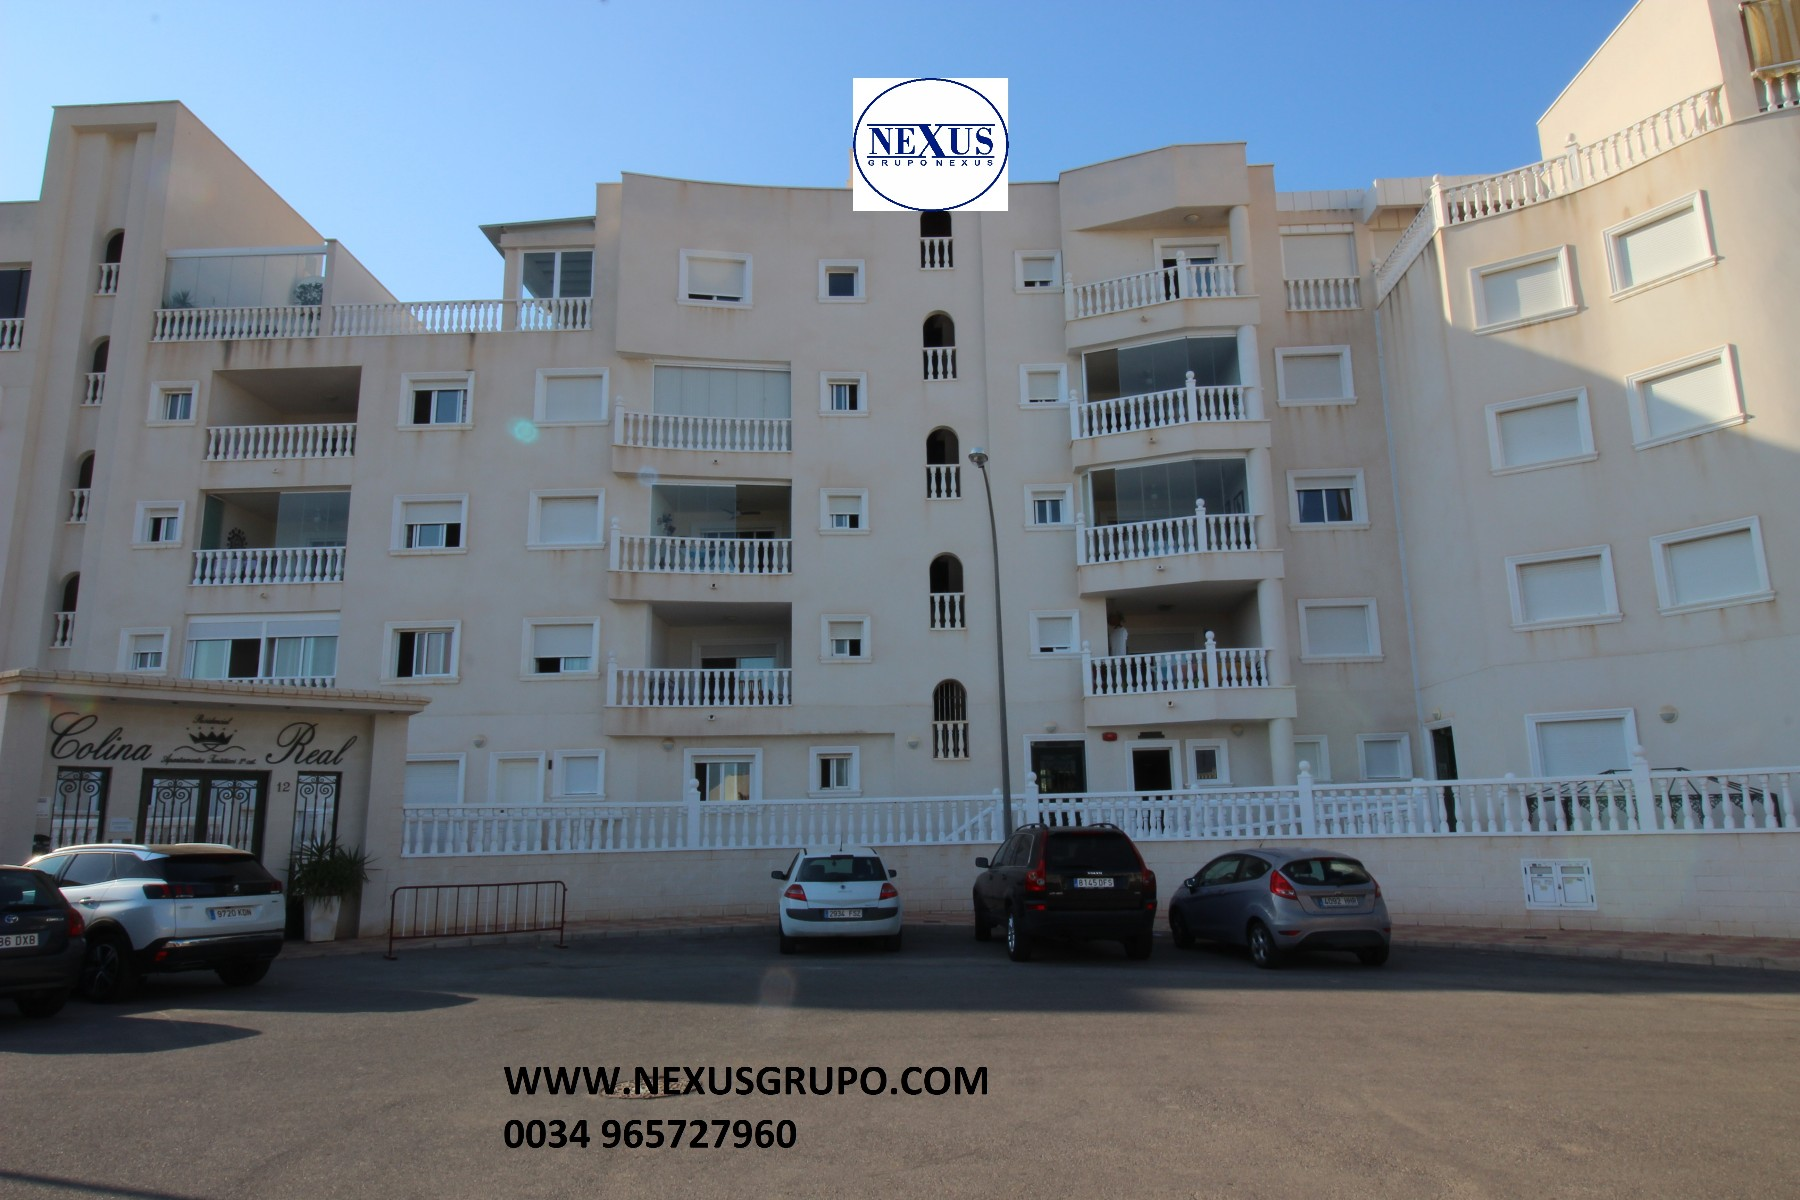 2 bedroom Apartment in Guardamar del Segura in Nexus Grupo